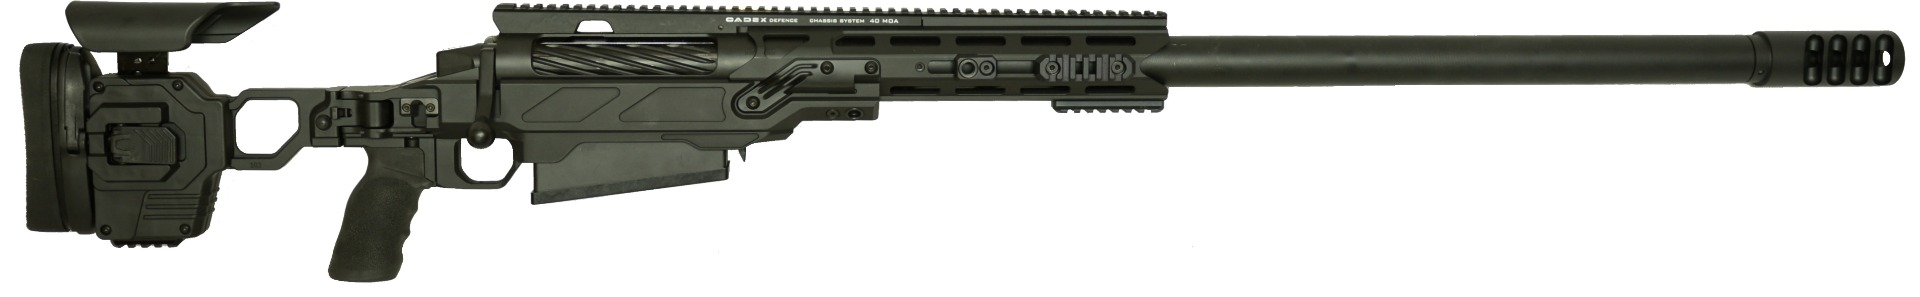 Bolt Action Complete Rifles   Accessories and Parts